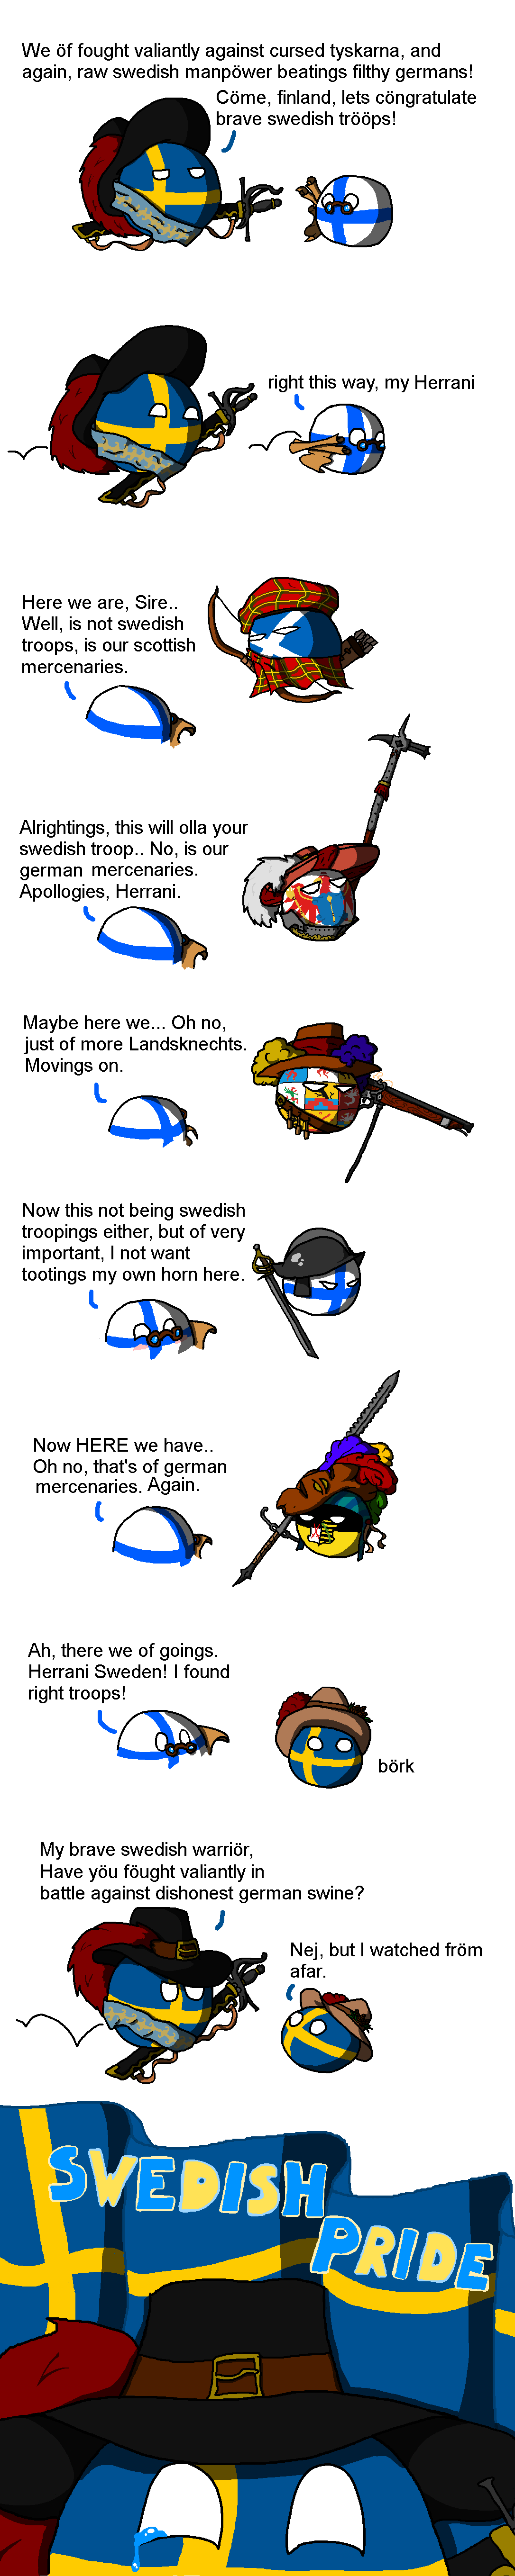 country-balls-glorious-swedish-army